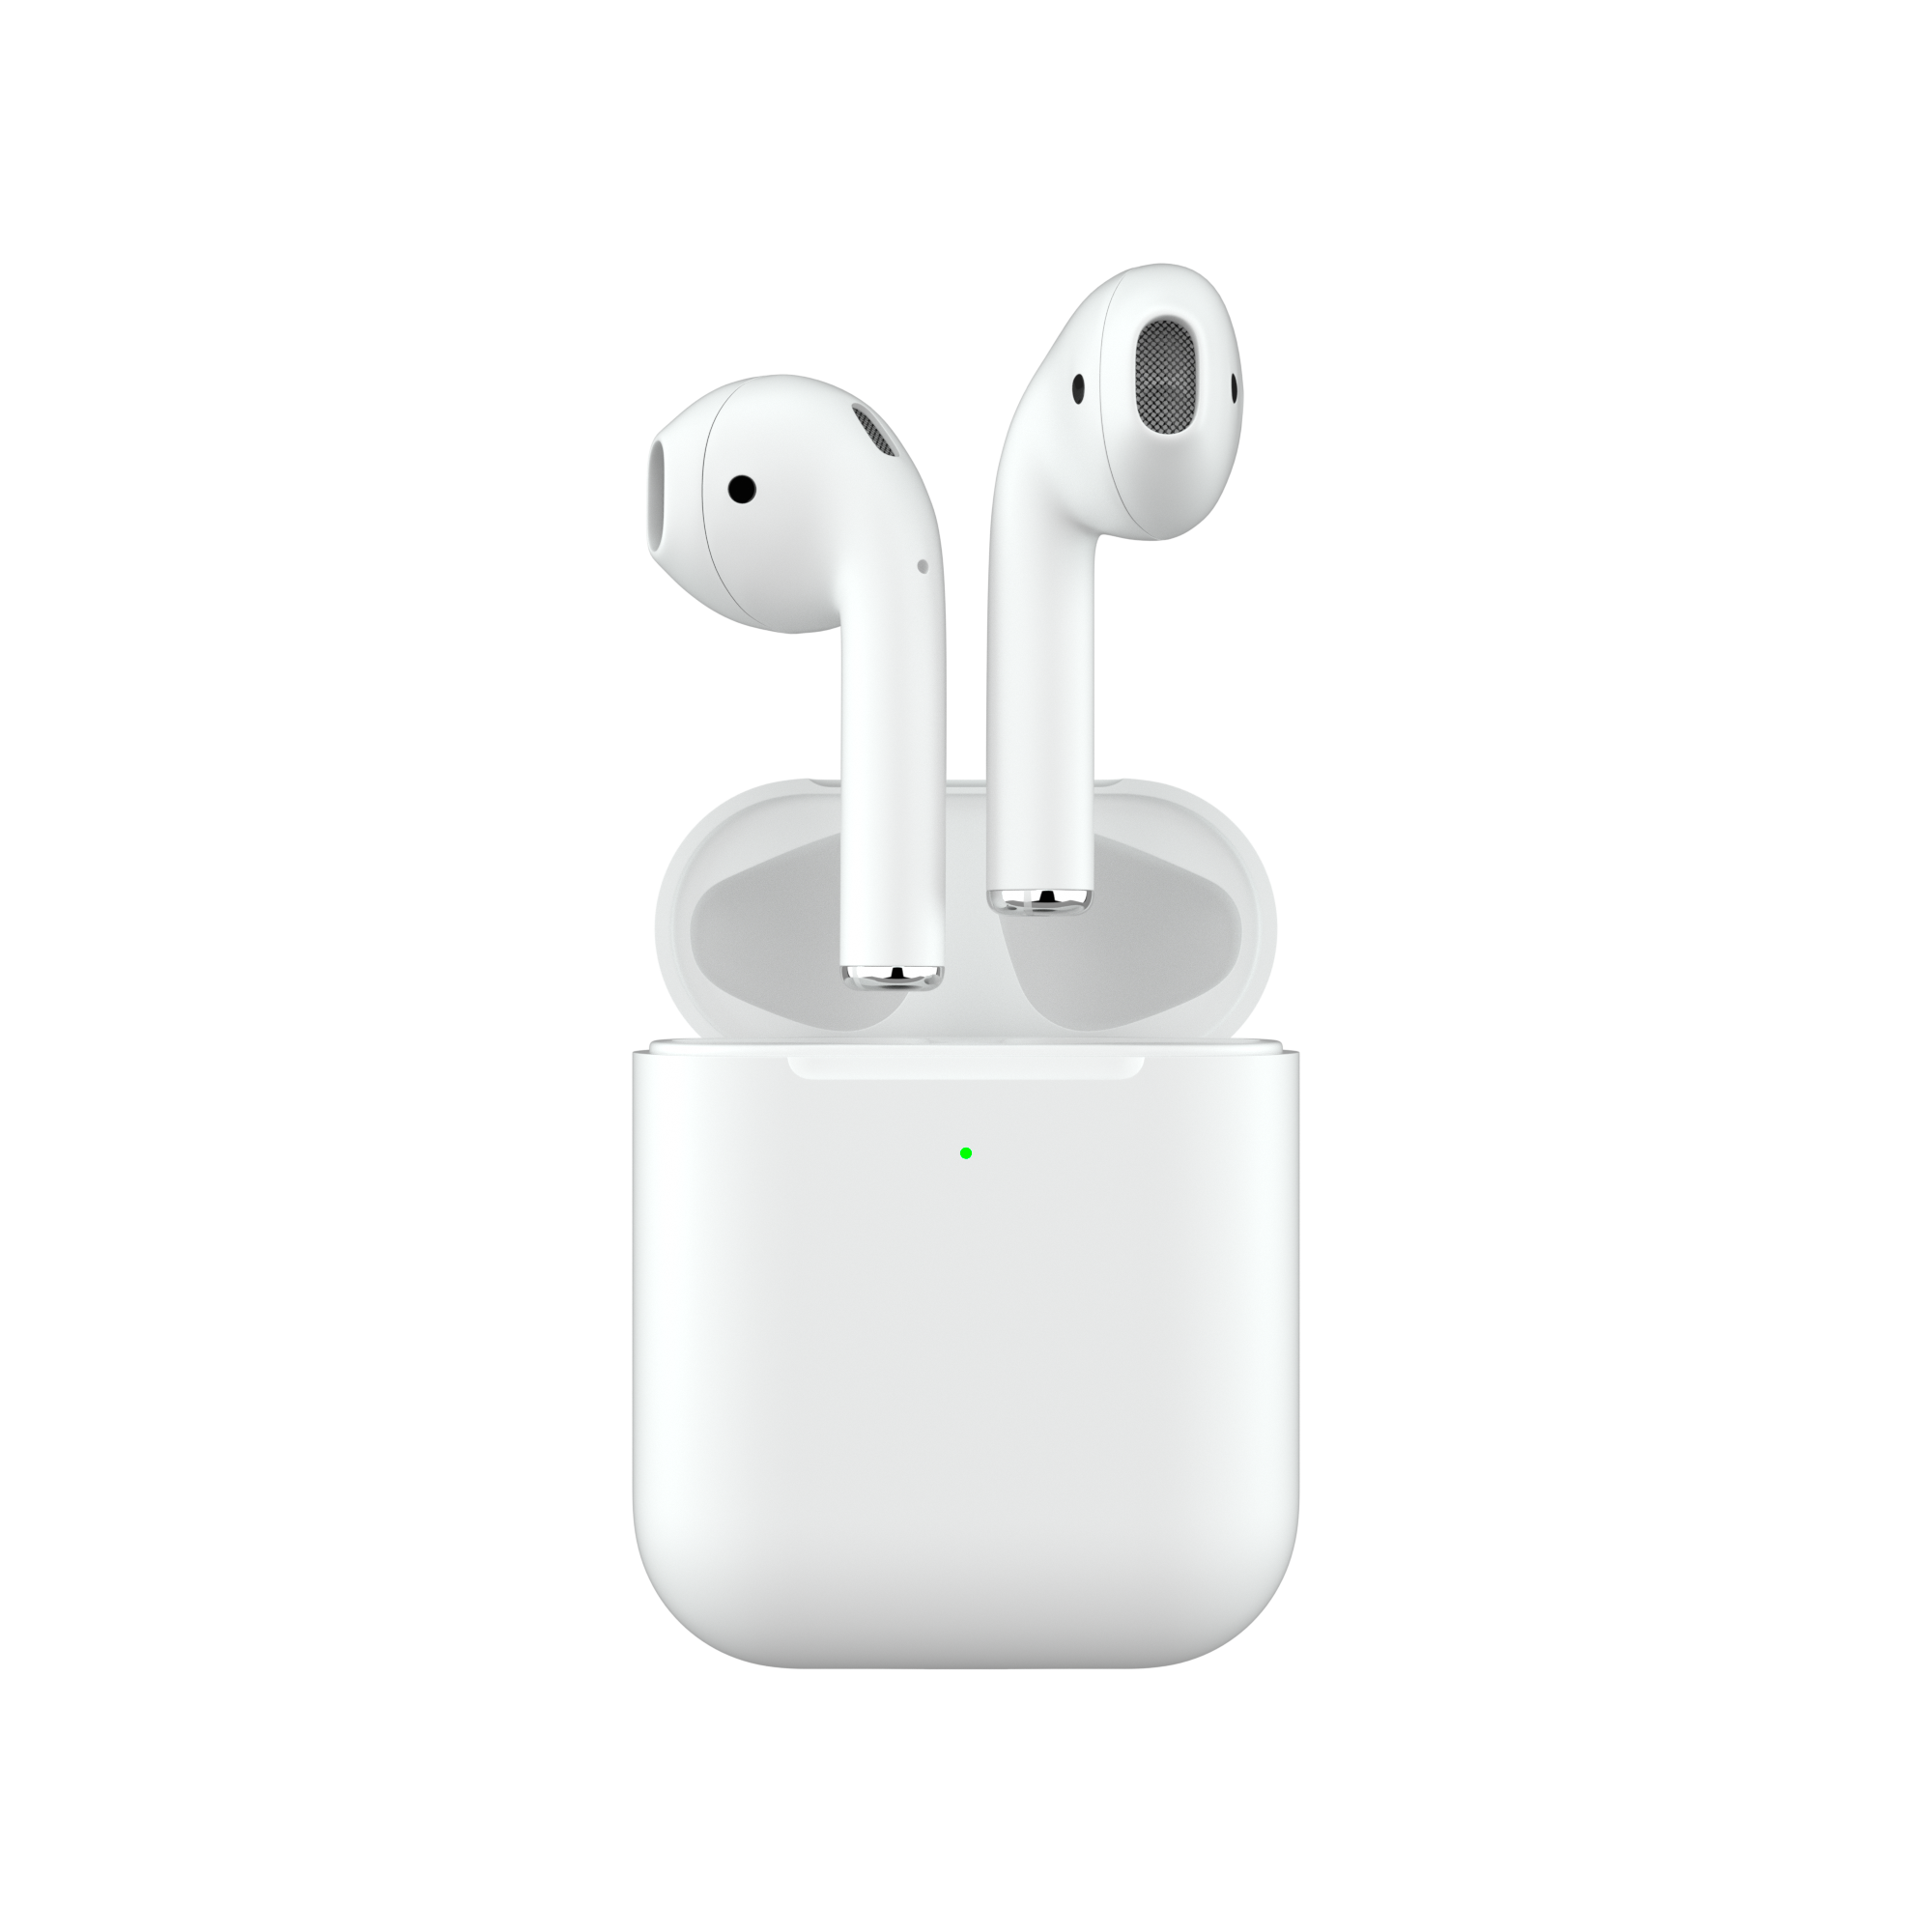 WHITEPODS 2